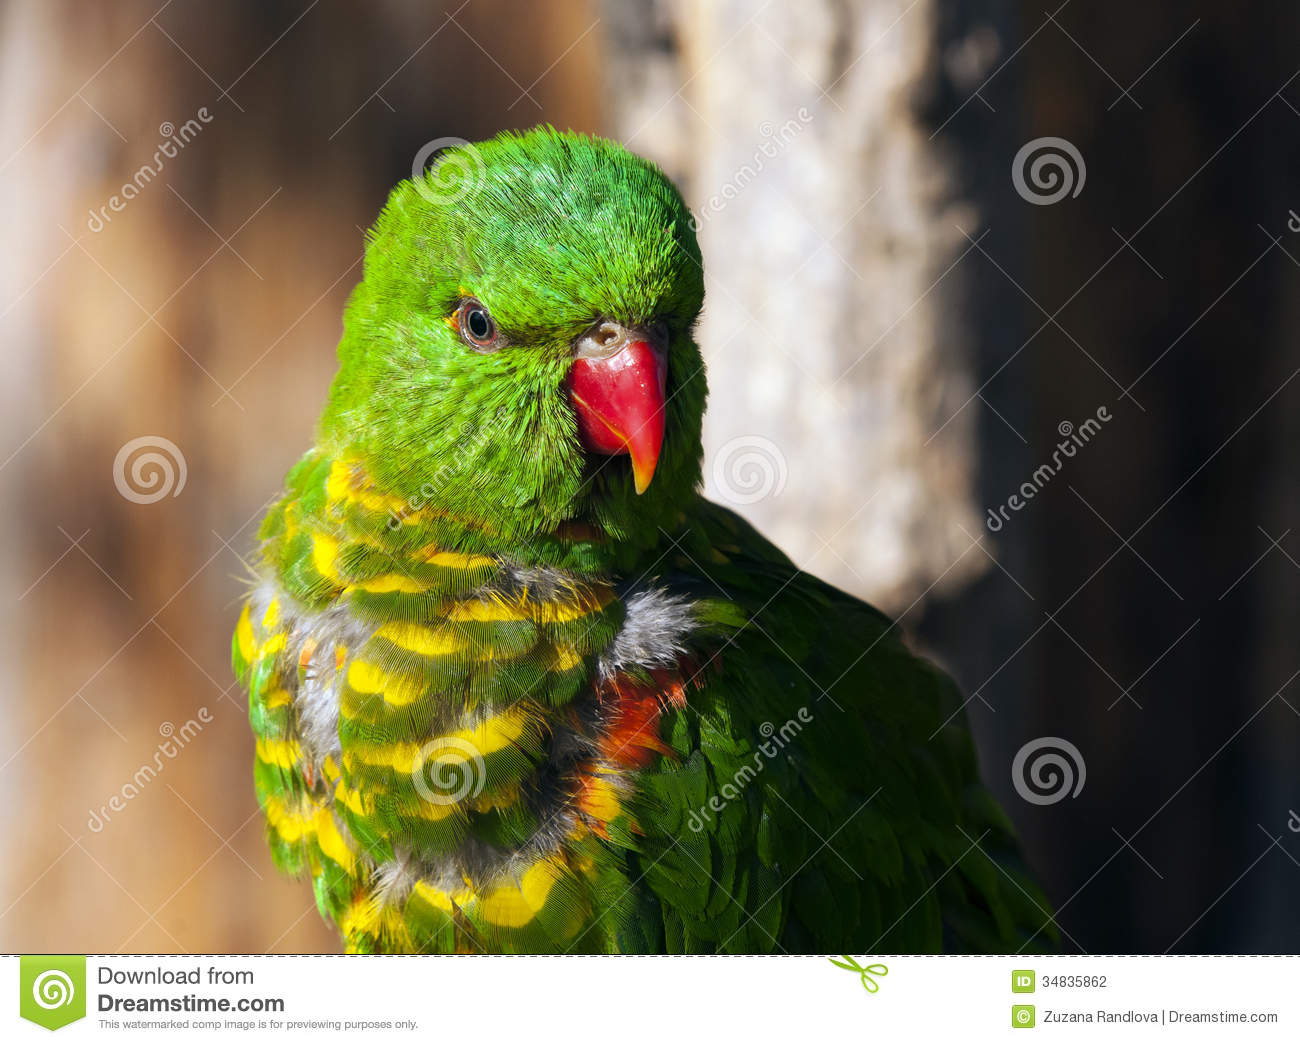 Green birds names - photo#12